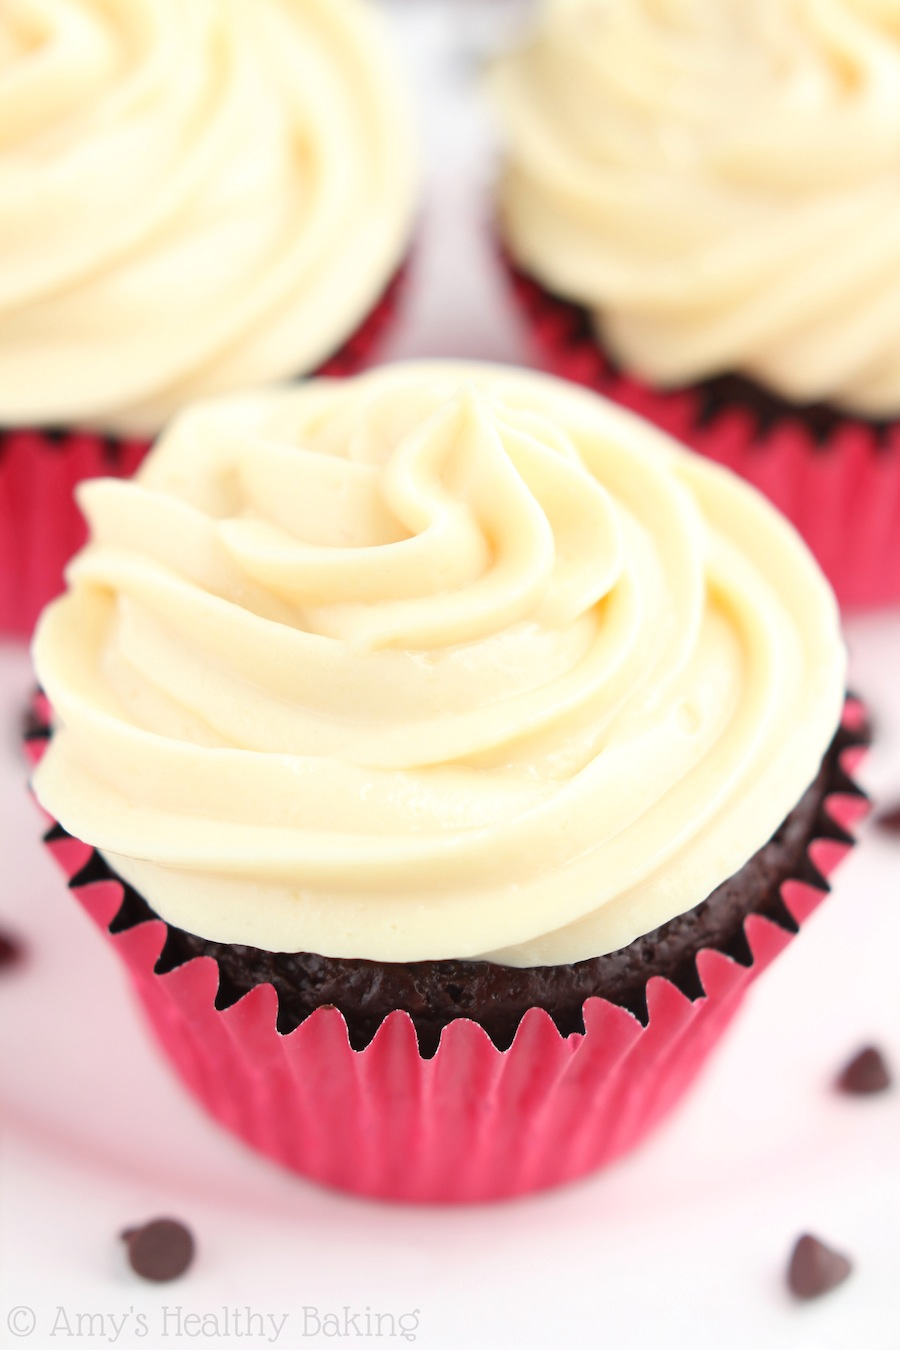 ... Chocolate Cupcakes with Dulce de Leche Frosting | Sweet Little Thang